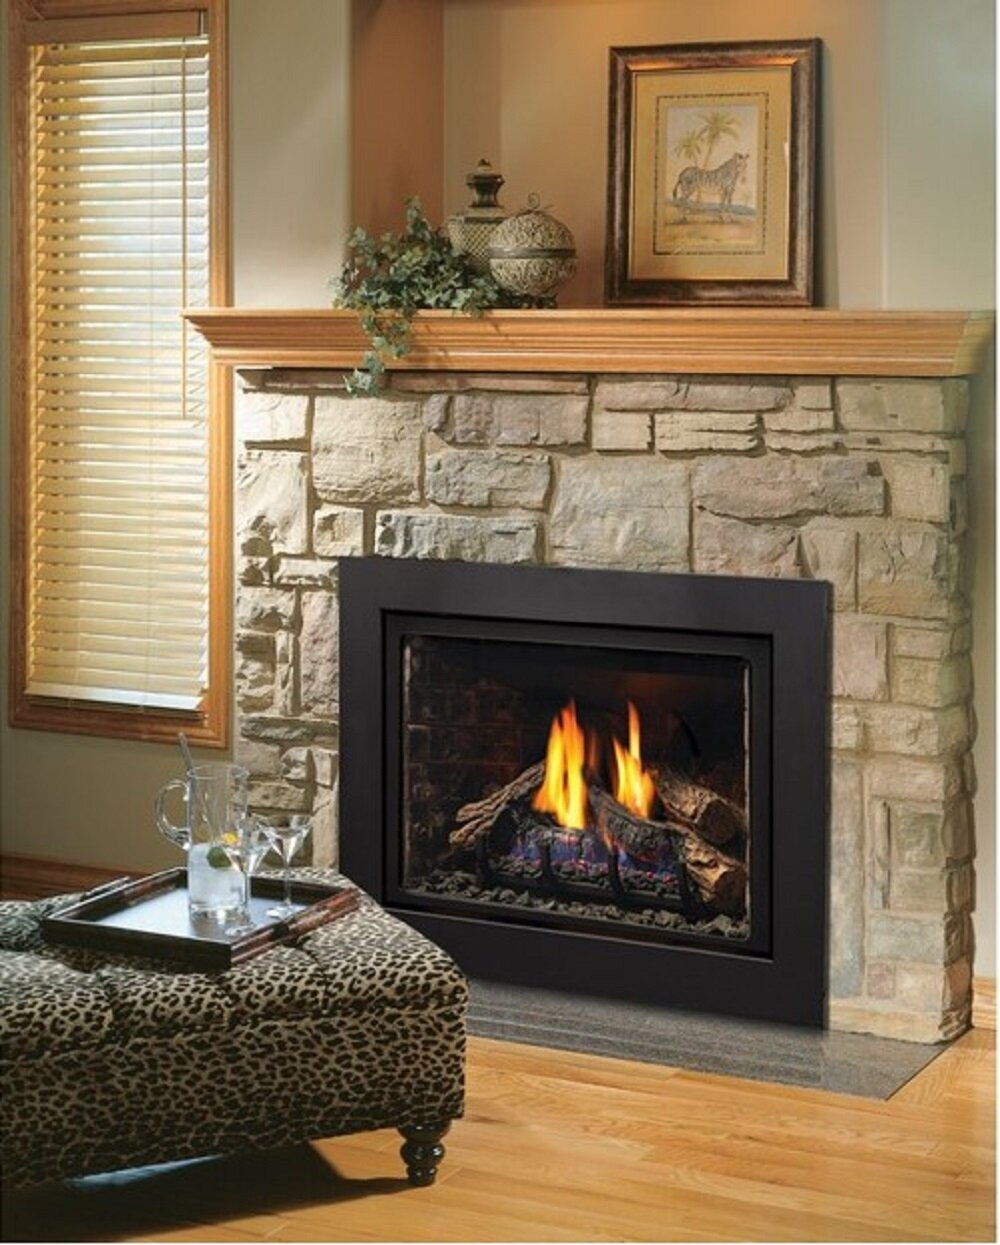 Dual Fuel Fireplace New Direct Vent Natural Gas Propane Fireplace Insert